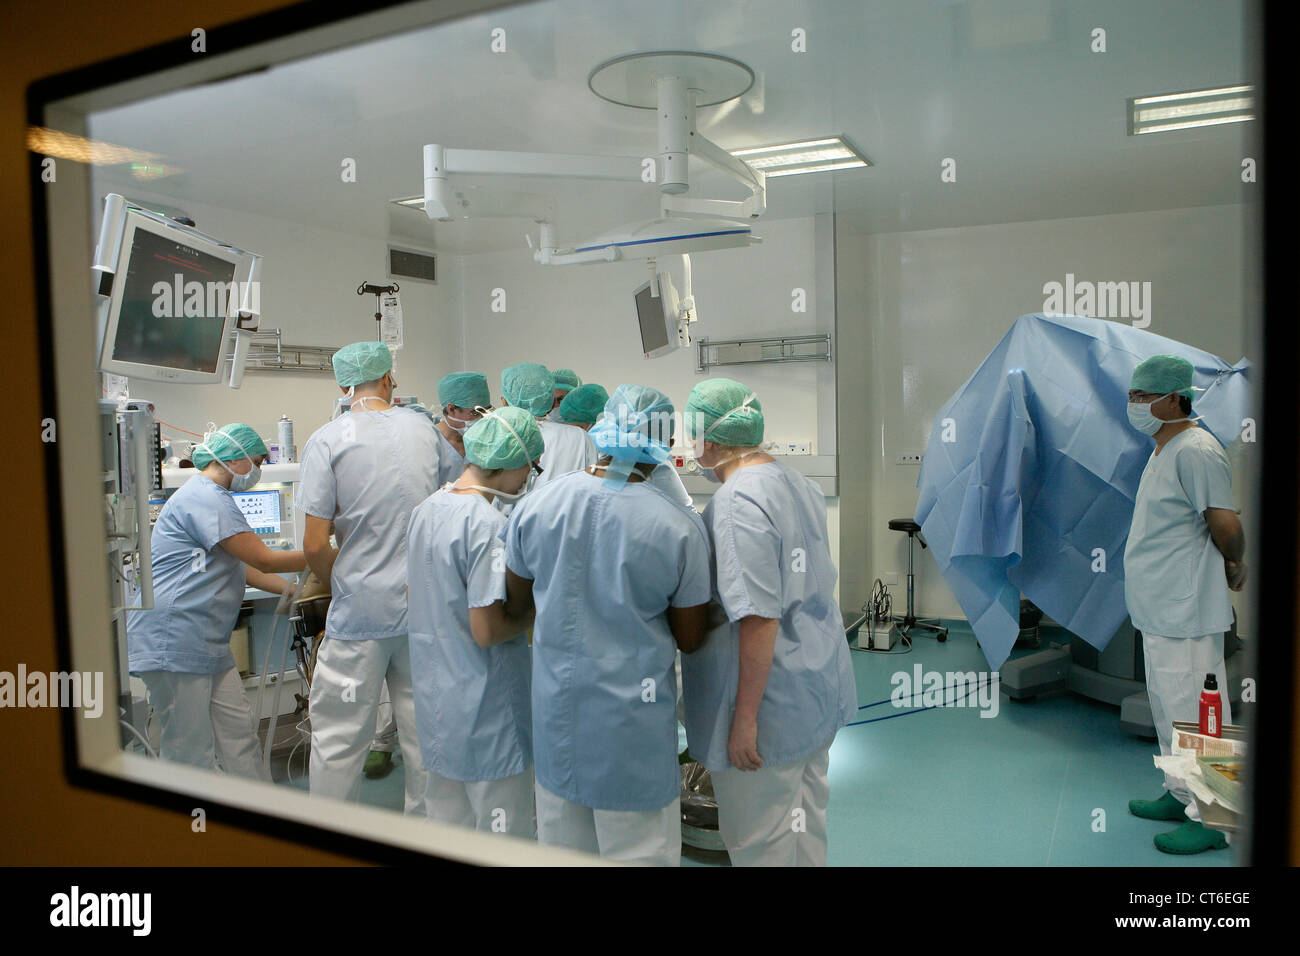 OPERATING ROOM - Stock Image